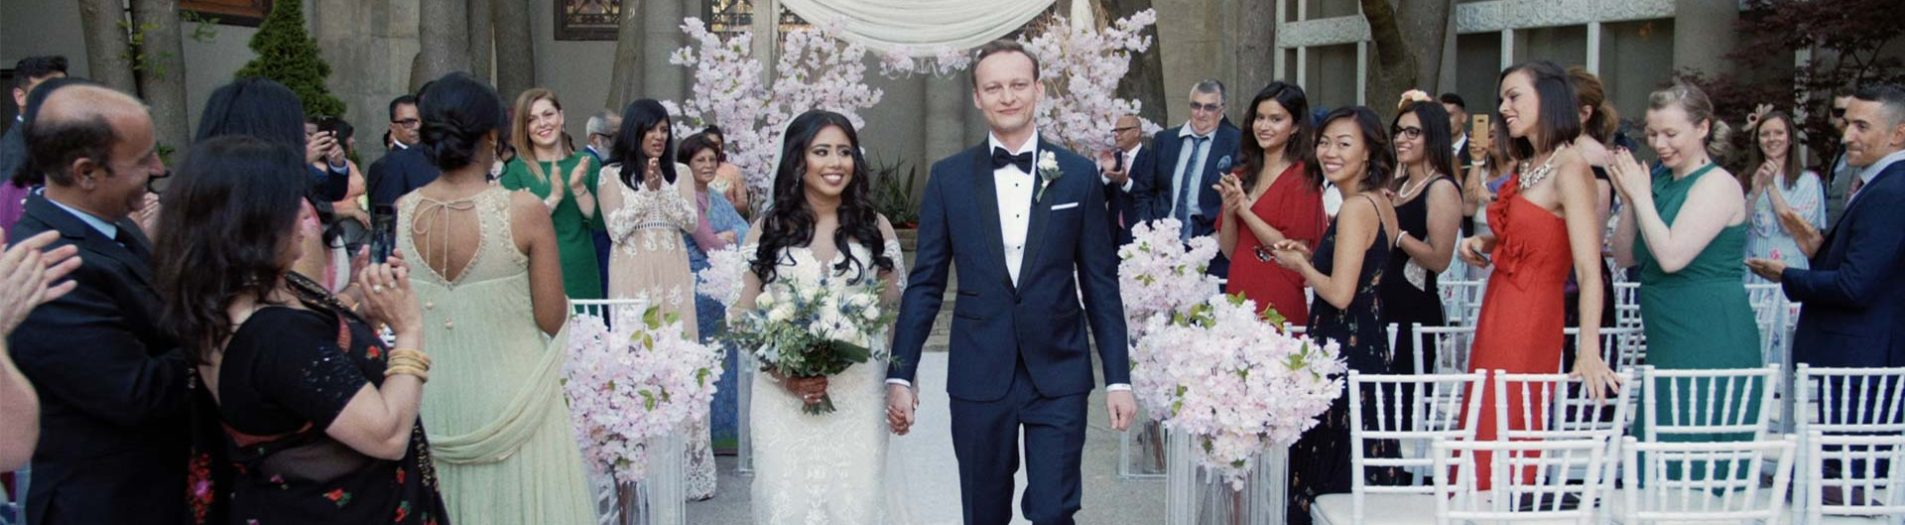 Stunning Liberty Grand Wedding Video Toronto | Mike + Nabeela Feature Film